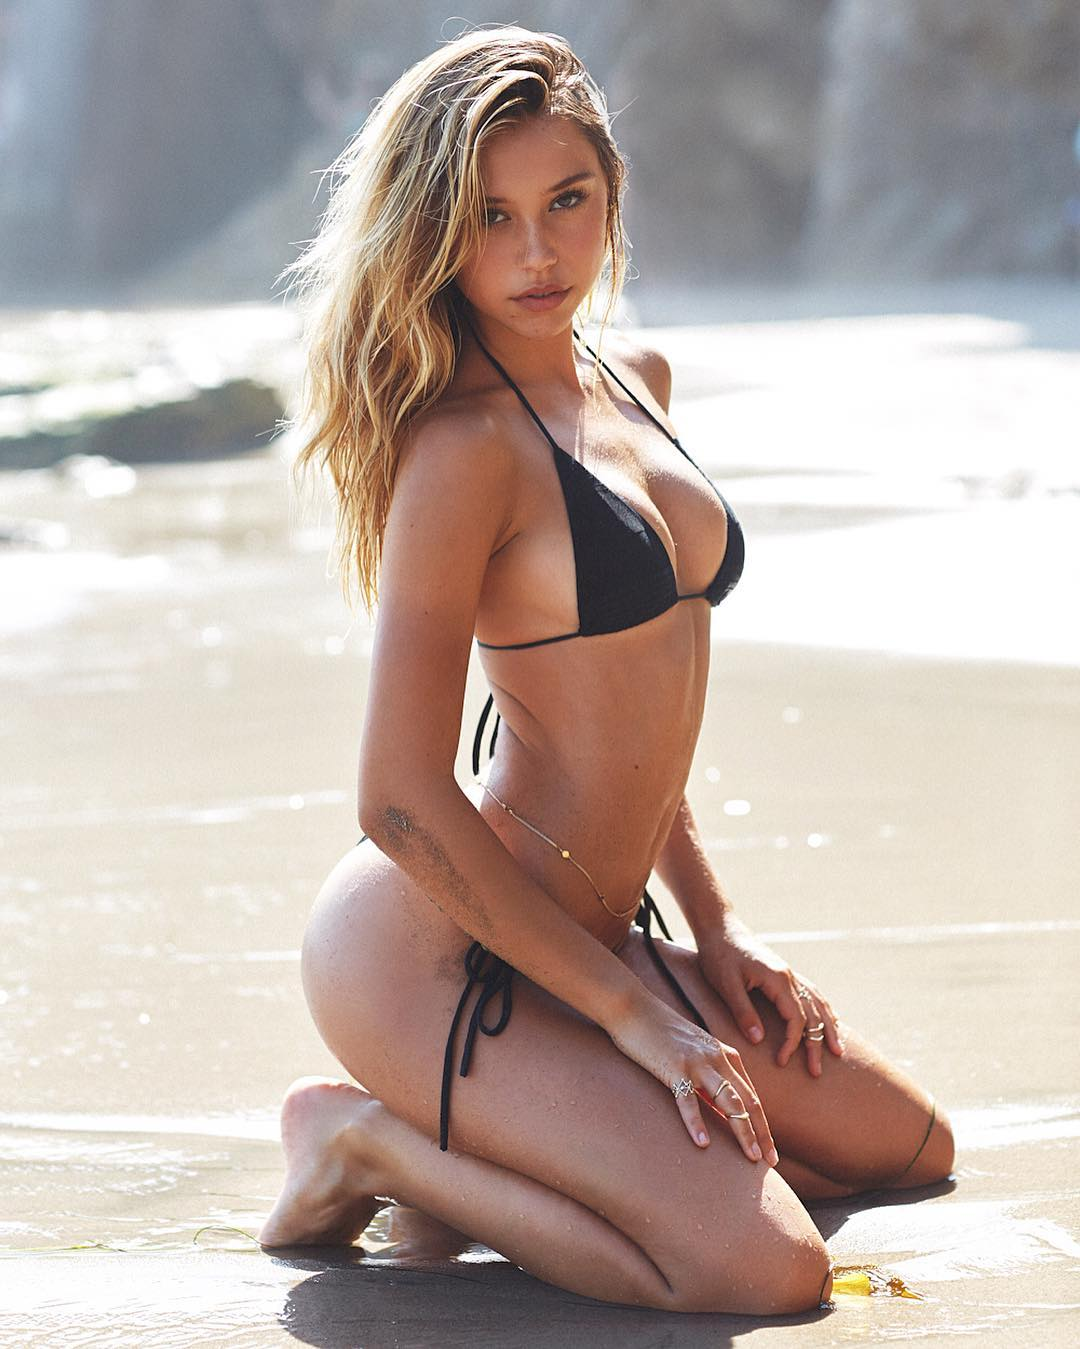 nudes (59 photos), Leaked Celebrites pictures